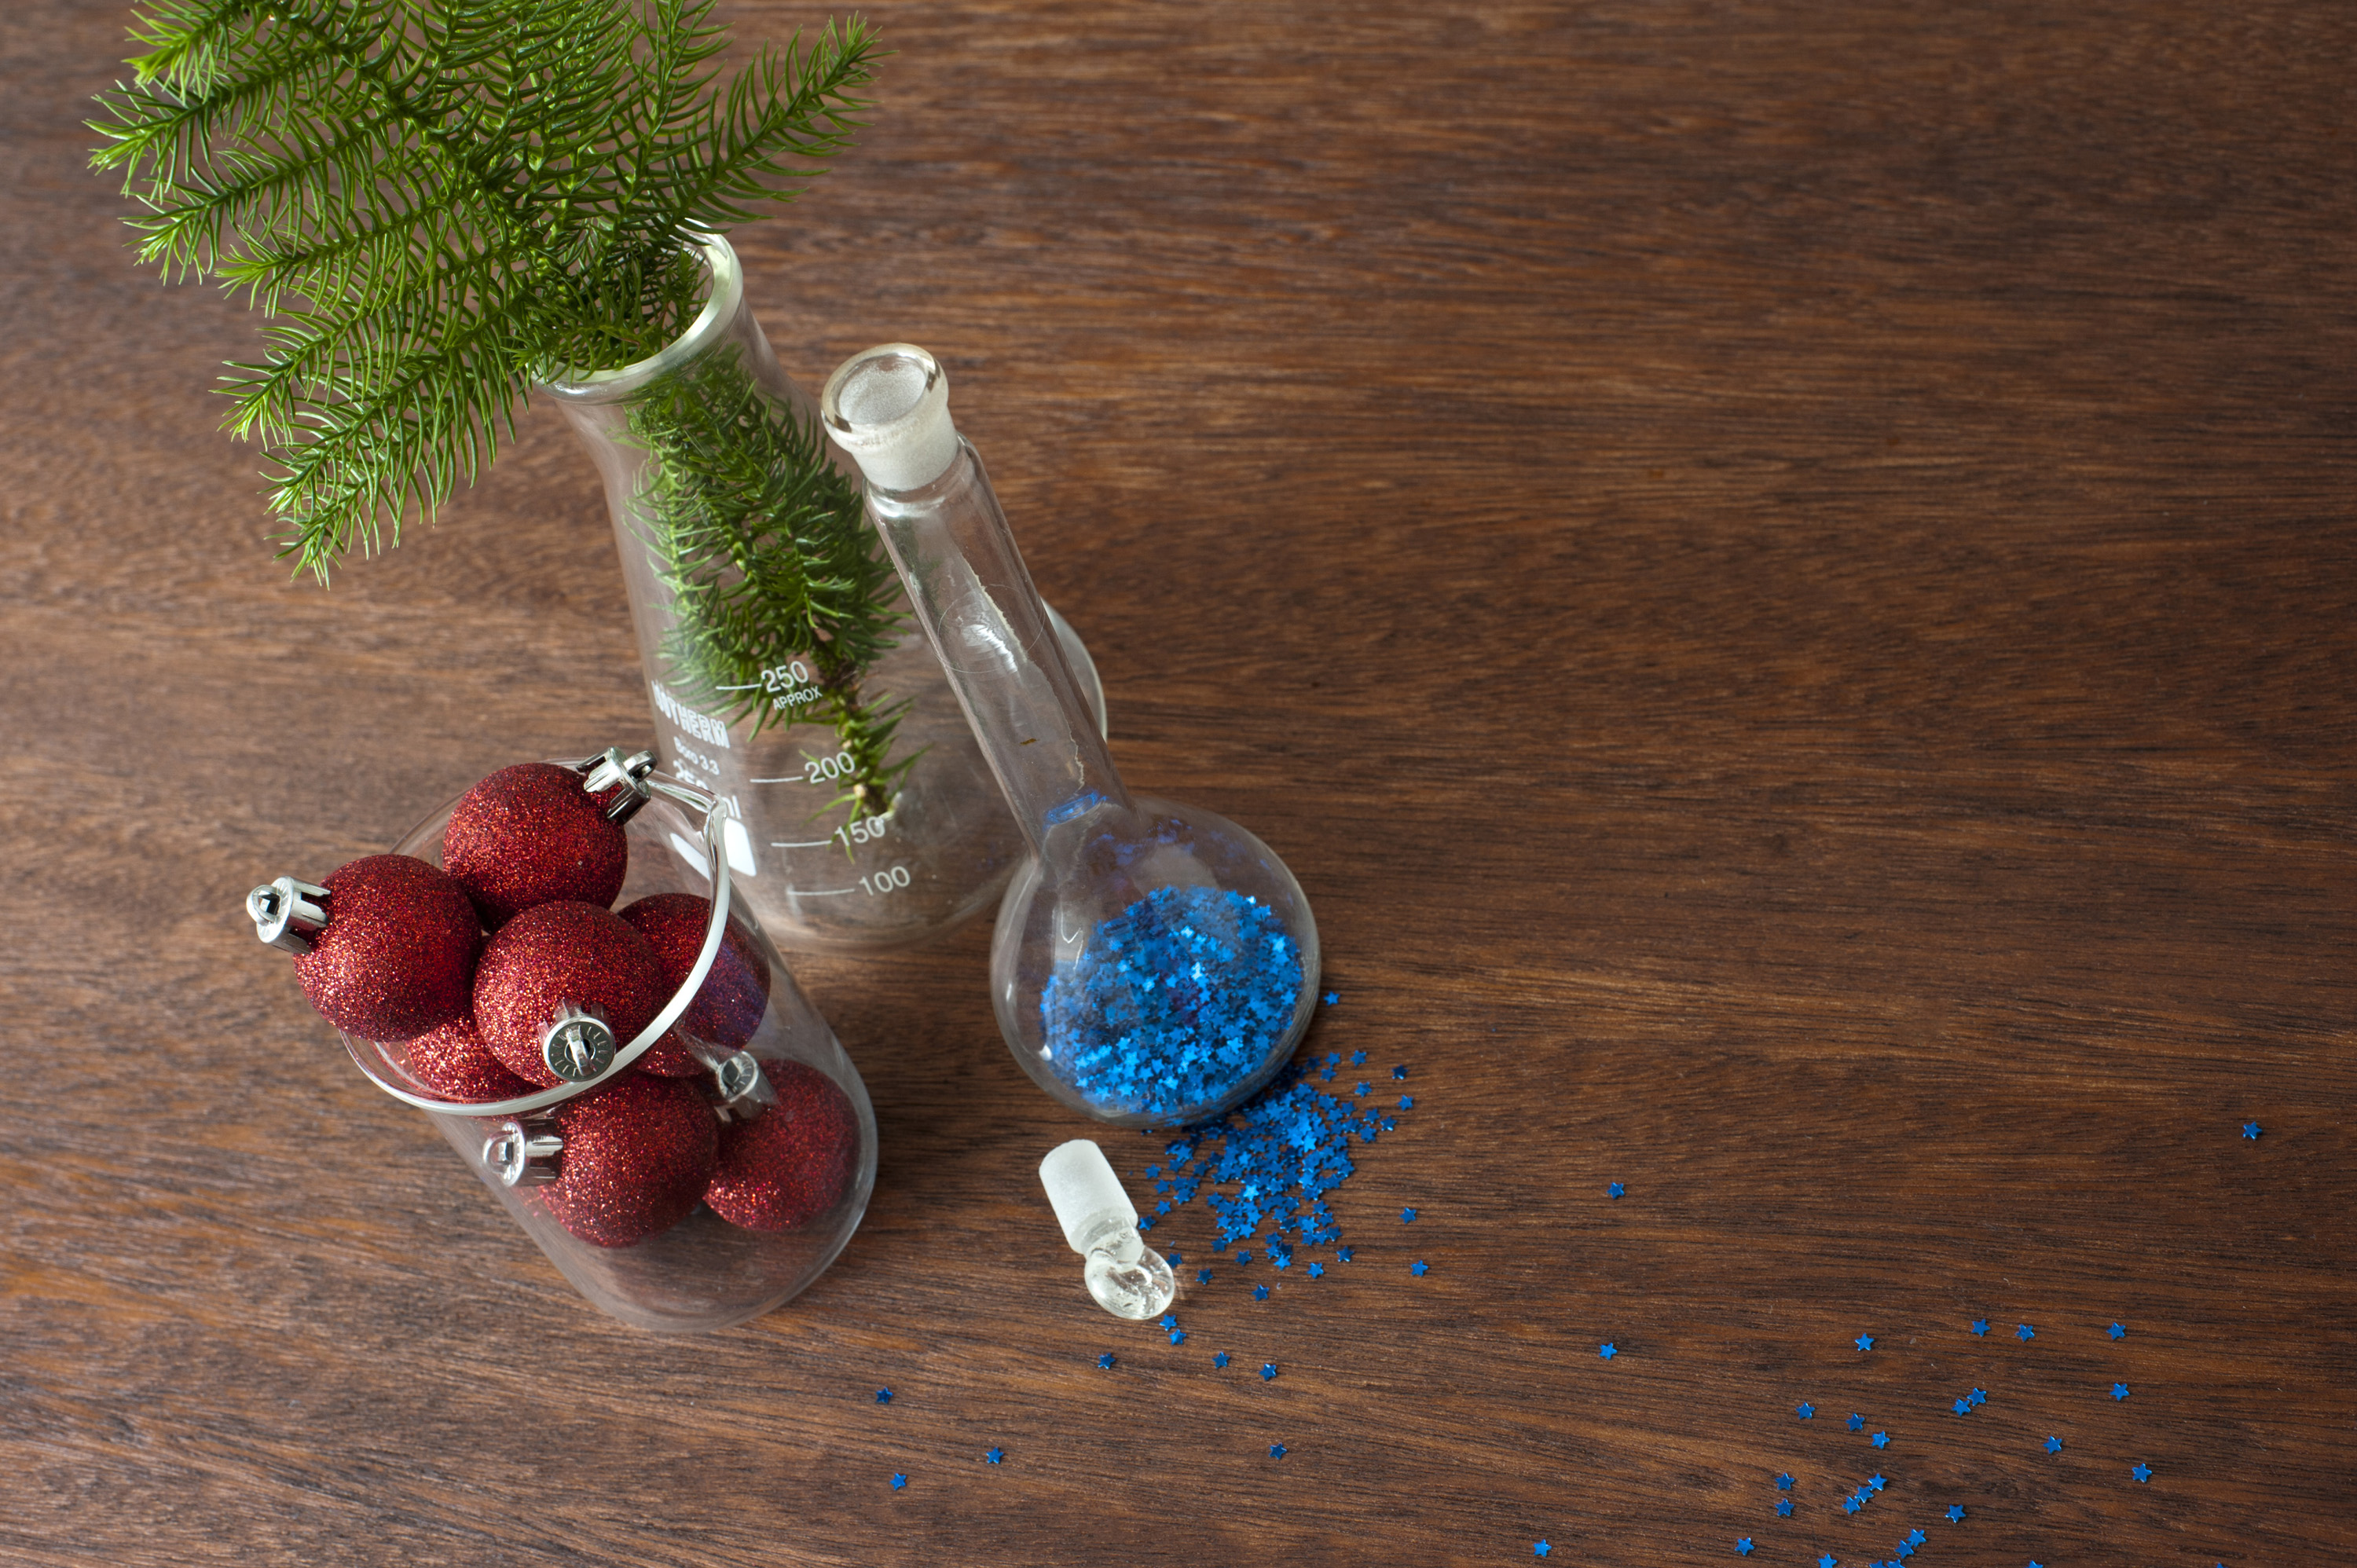 christmas baubles and glitter, a festive science concept